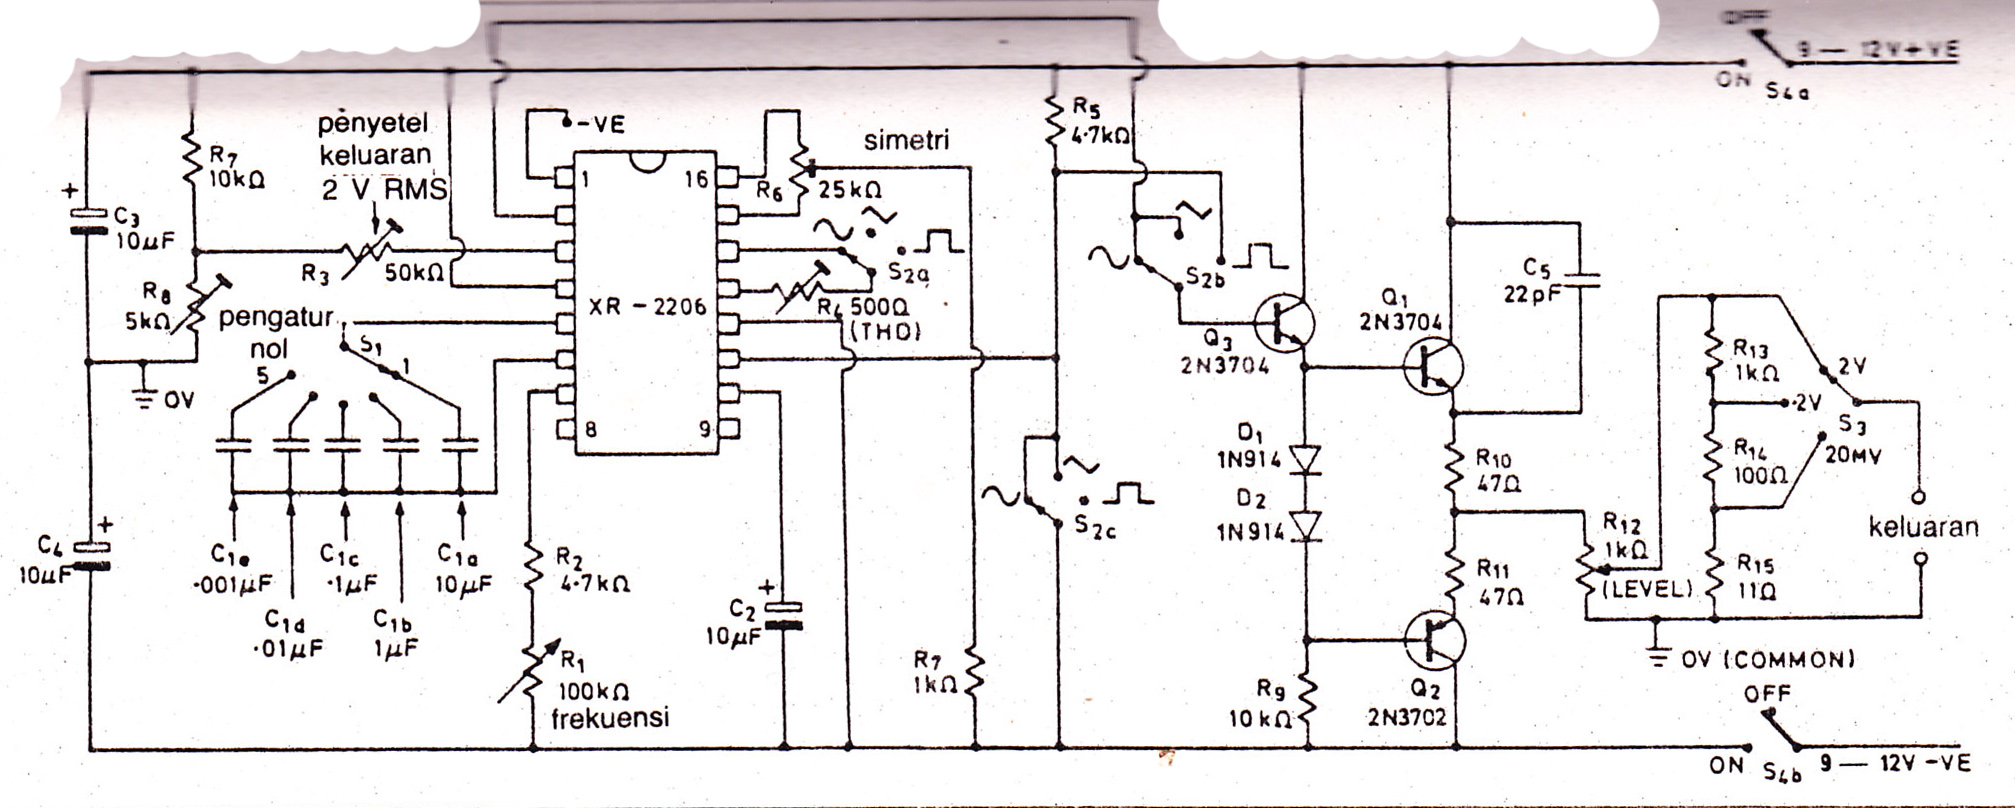 XR2206 Signal Generator | Electronics Forum (Circuits, Projects ...